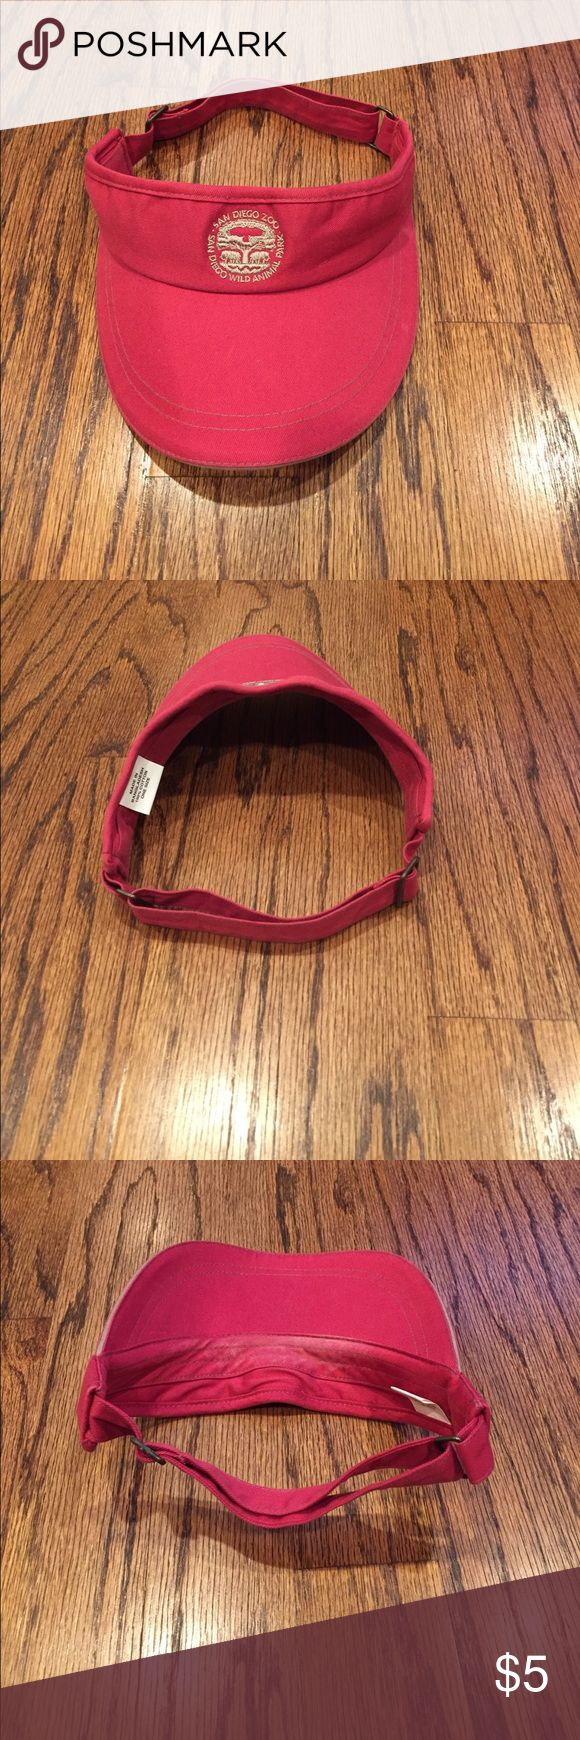 Red San Diego Zoo and Safari Park Visor There is a mild sunscreen stain (see pictures) but it is otherwise in great shape. Accessories Hats